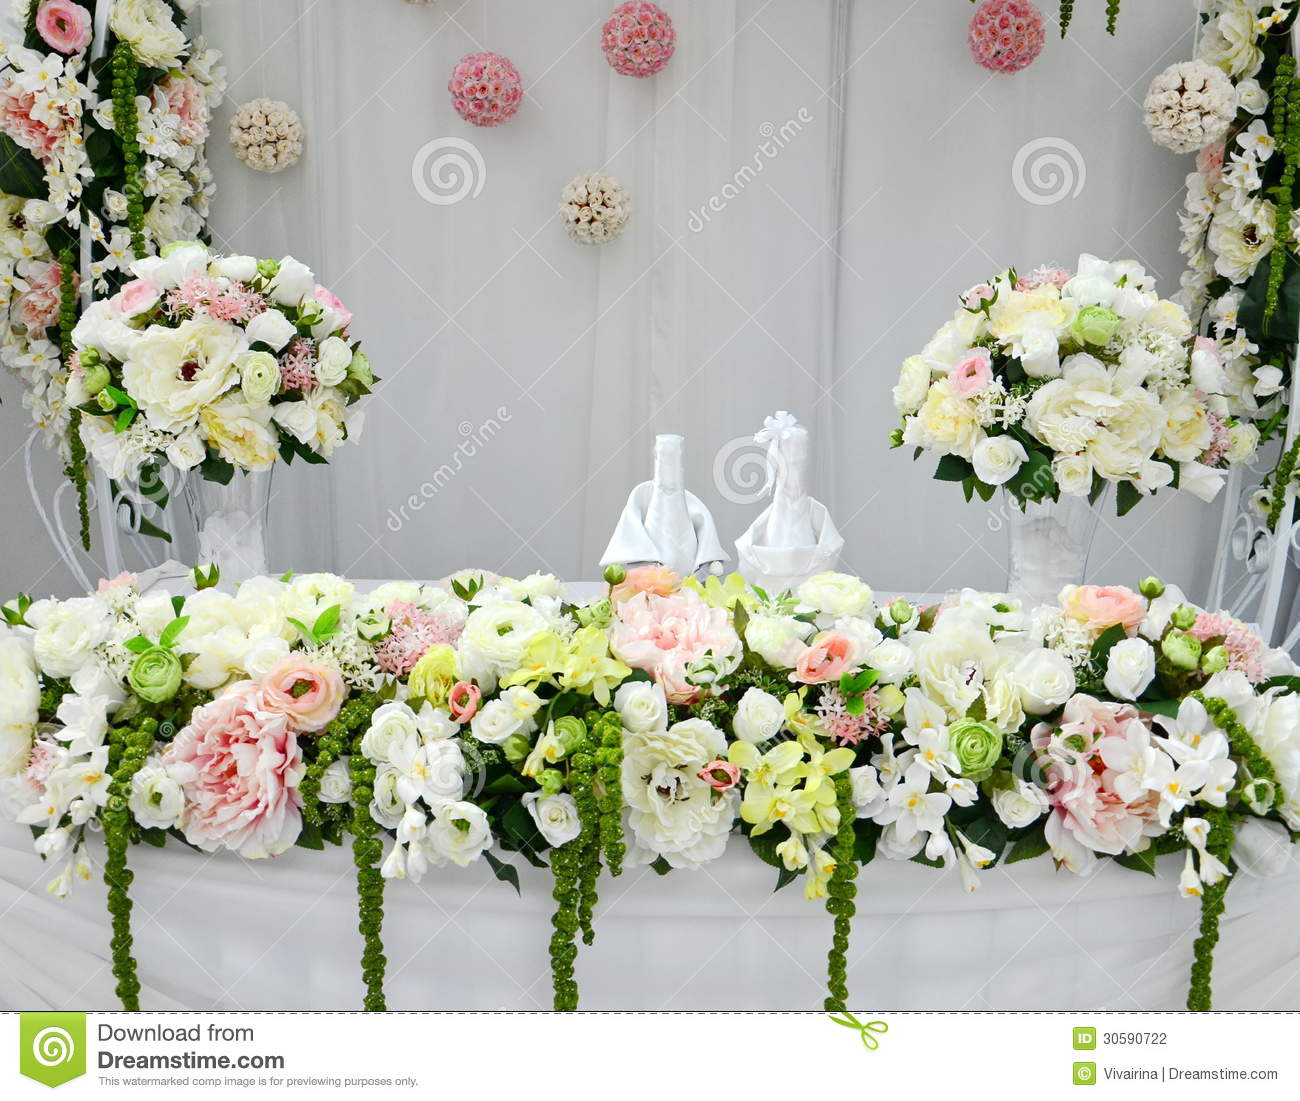 Breathtaking Wedding Table Flower Arrangements Pictures Design Ideas ...